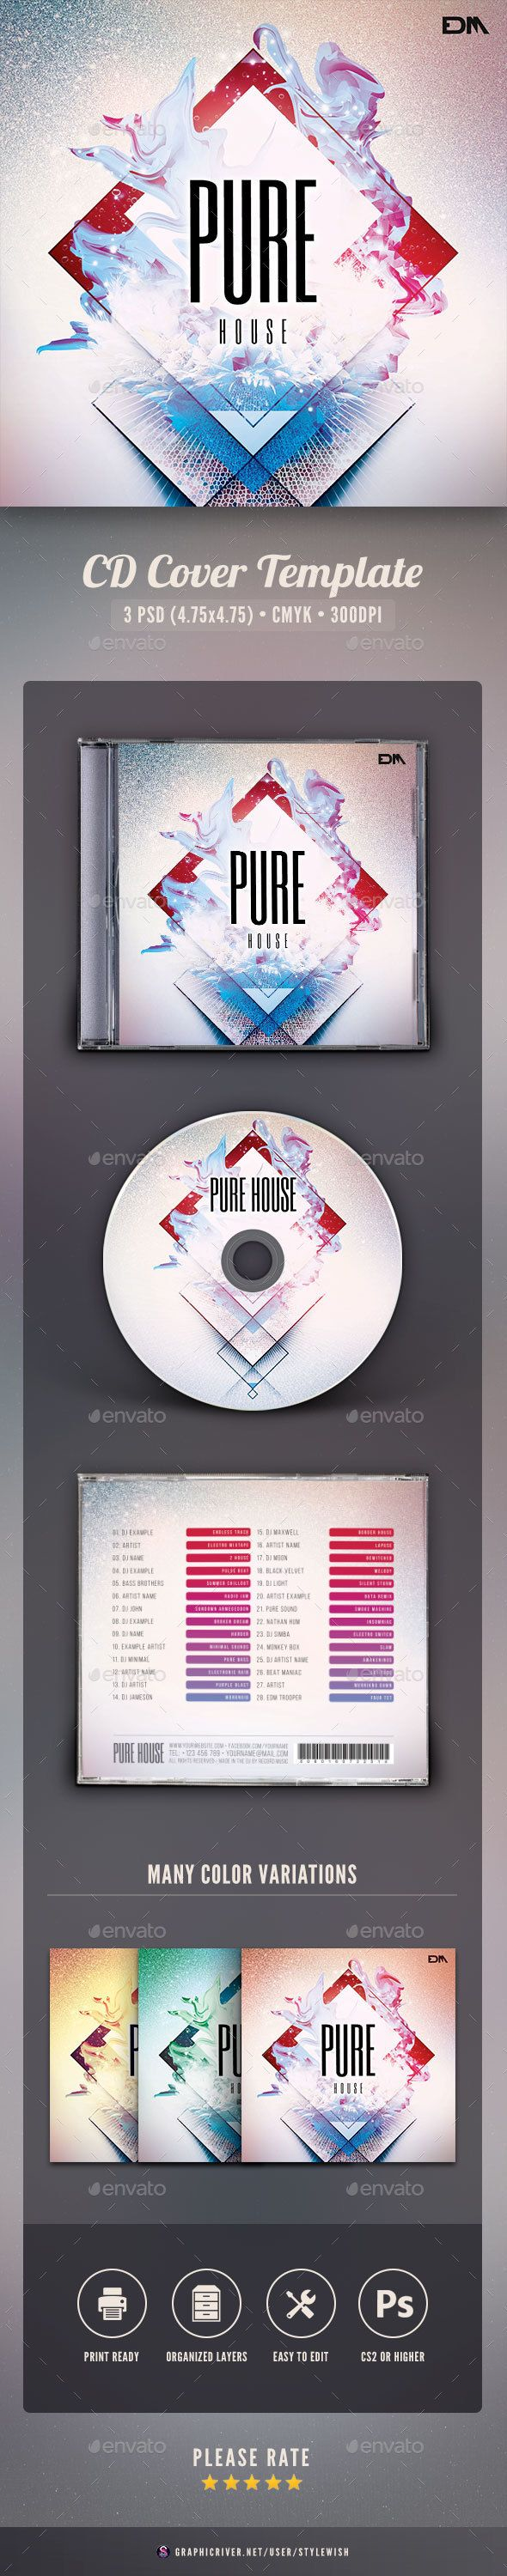 PSD Pure House CD Cover Artwork  Template • Only available here ➝ http://graphicriver.net/item/pure-house-cd-cover-artwork/16042133?ref=pxcr